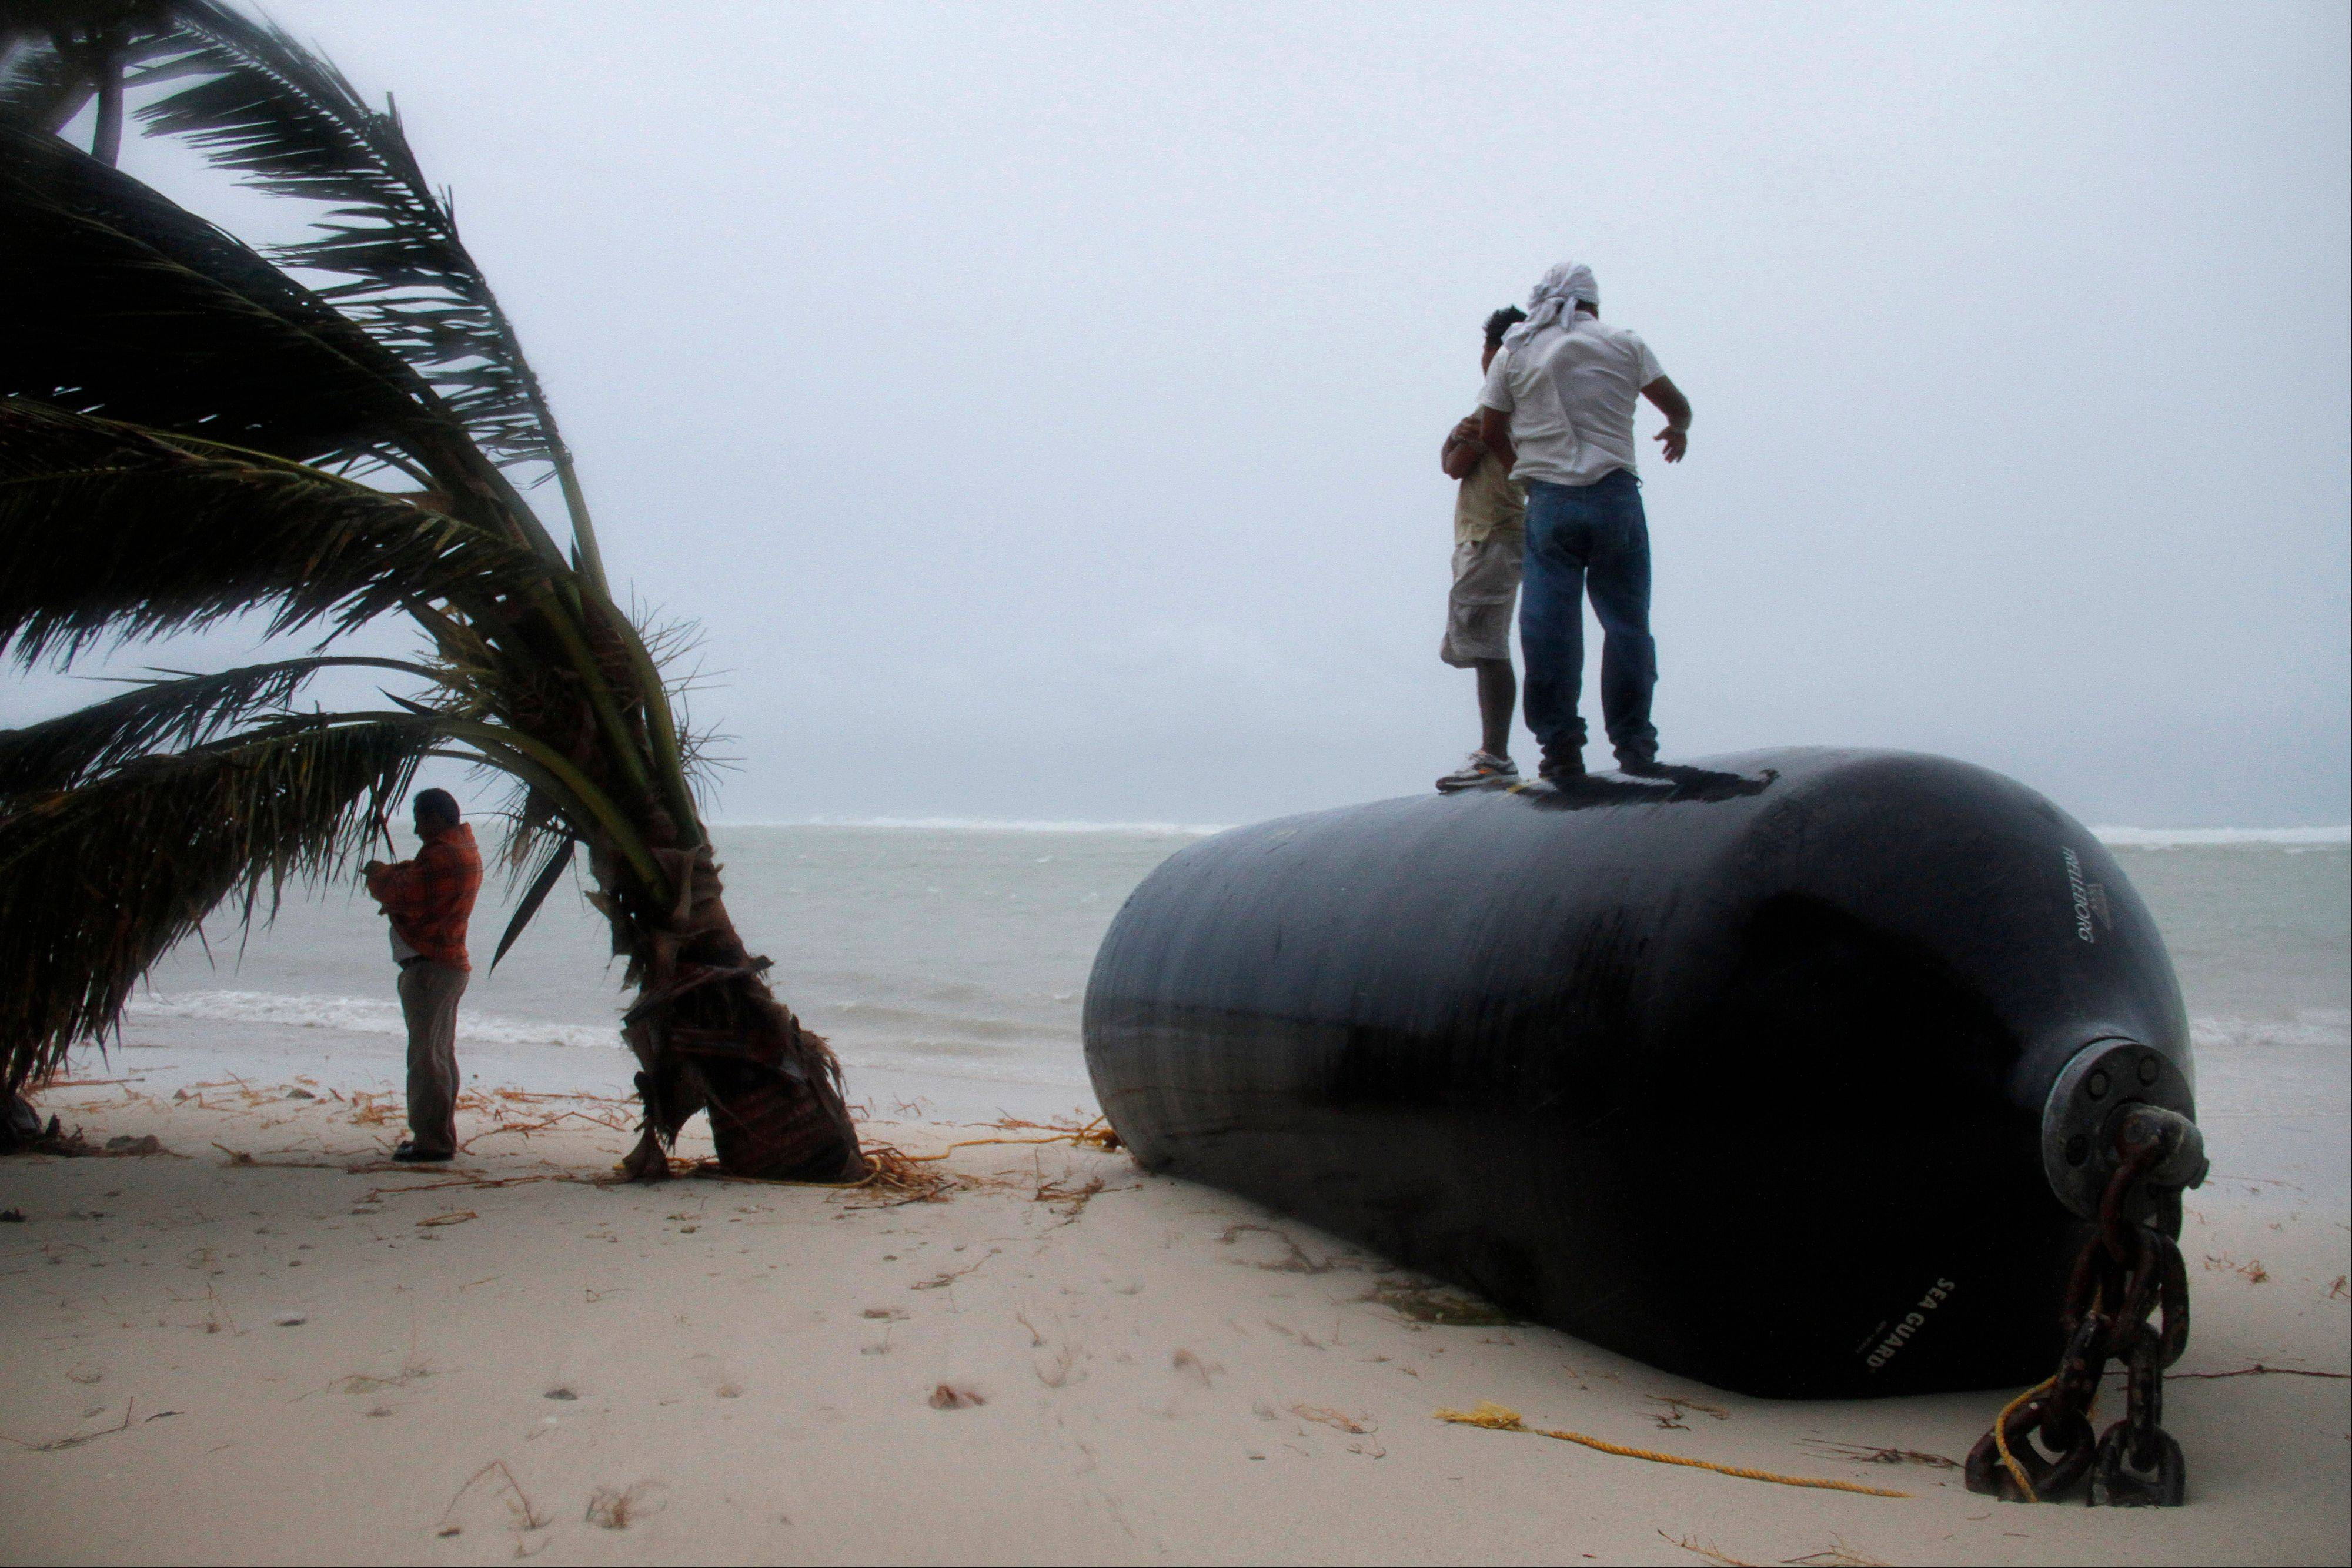 Men stand on top of a marine fender that was ripped from a dock after Hurricane Ernesto made landfall overnight in Mahahual, near Chetumal, Mexico, Wednesday.